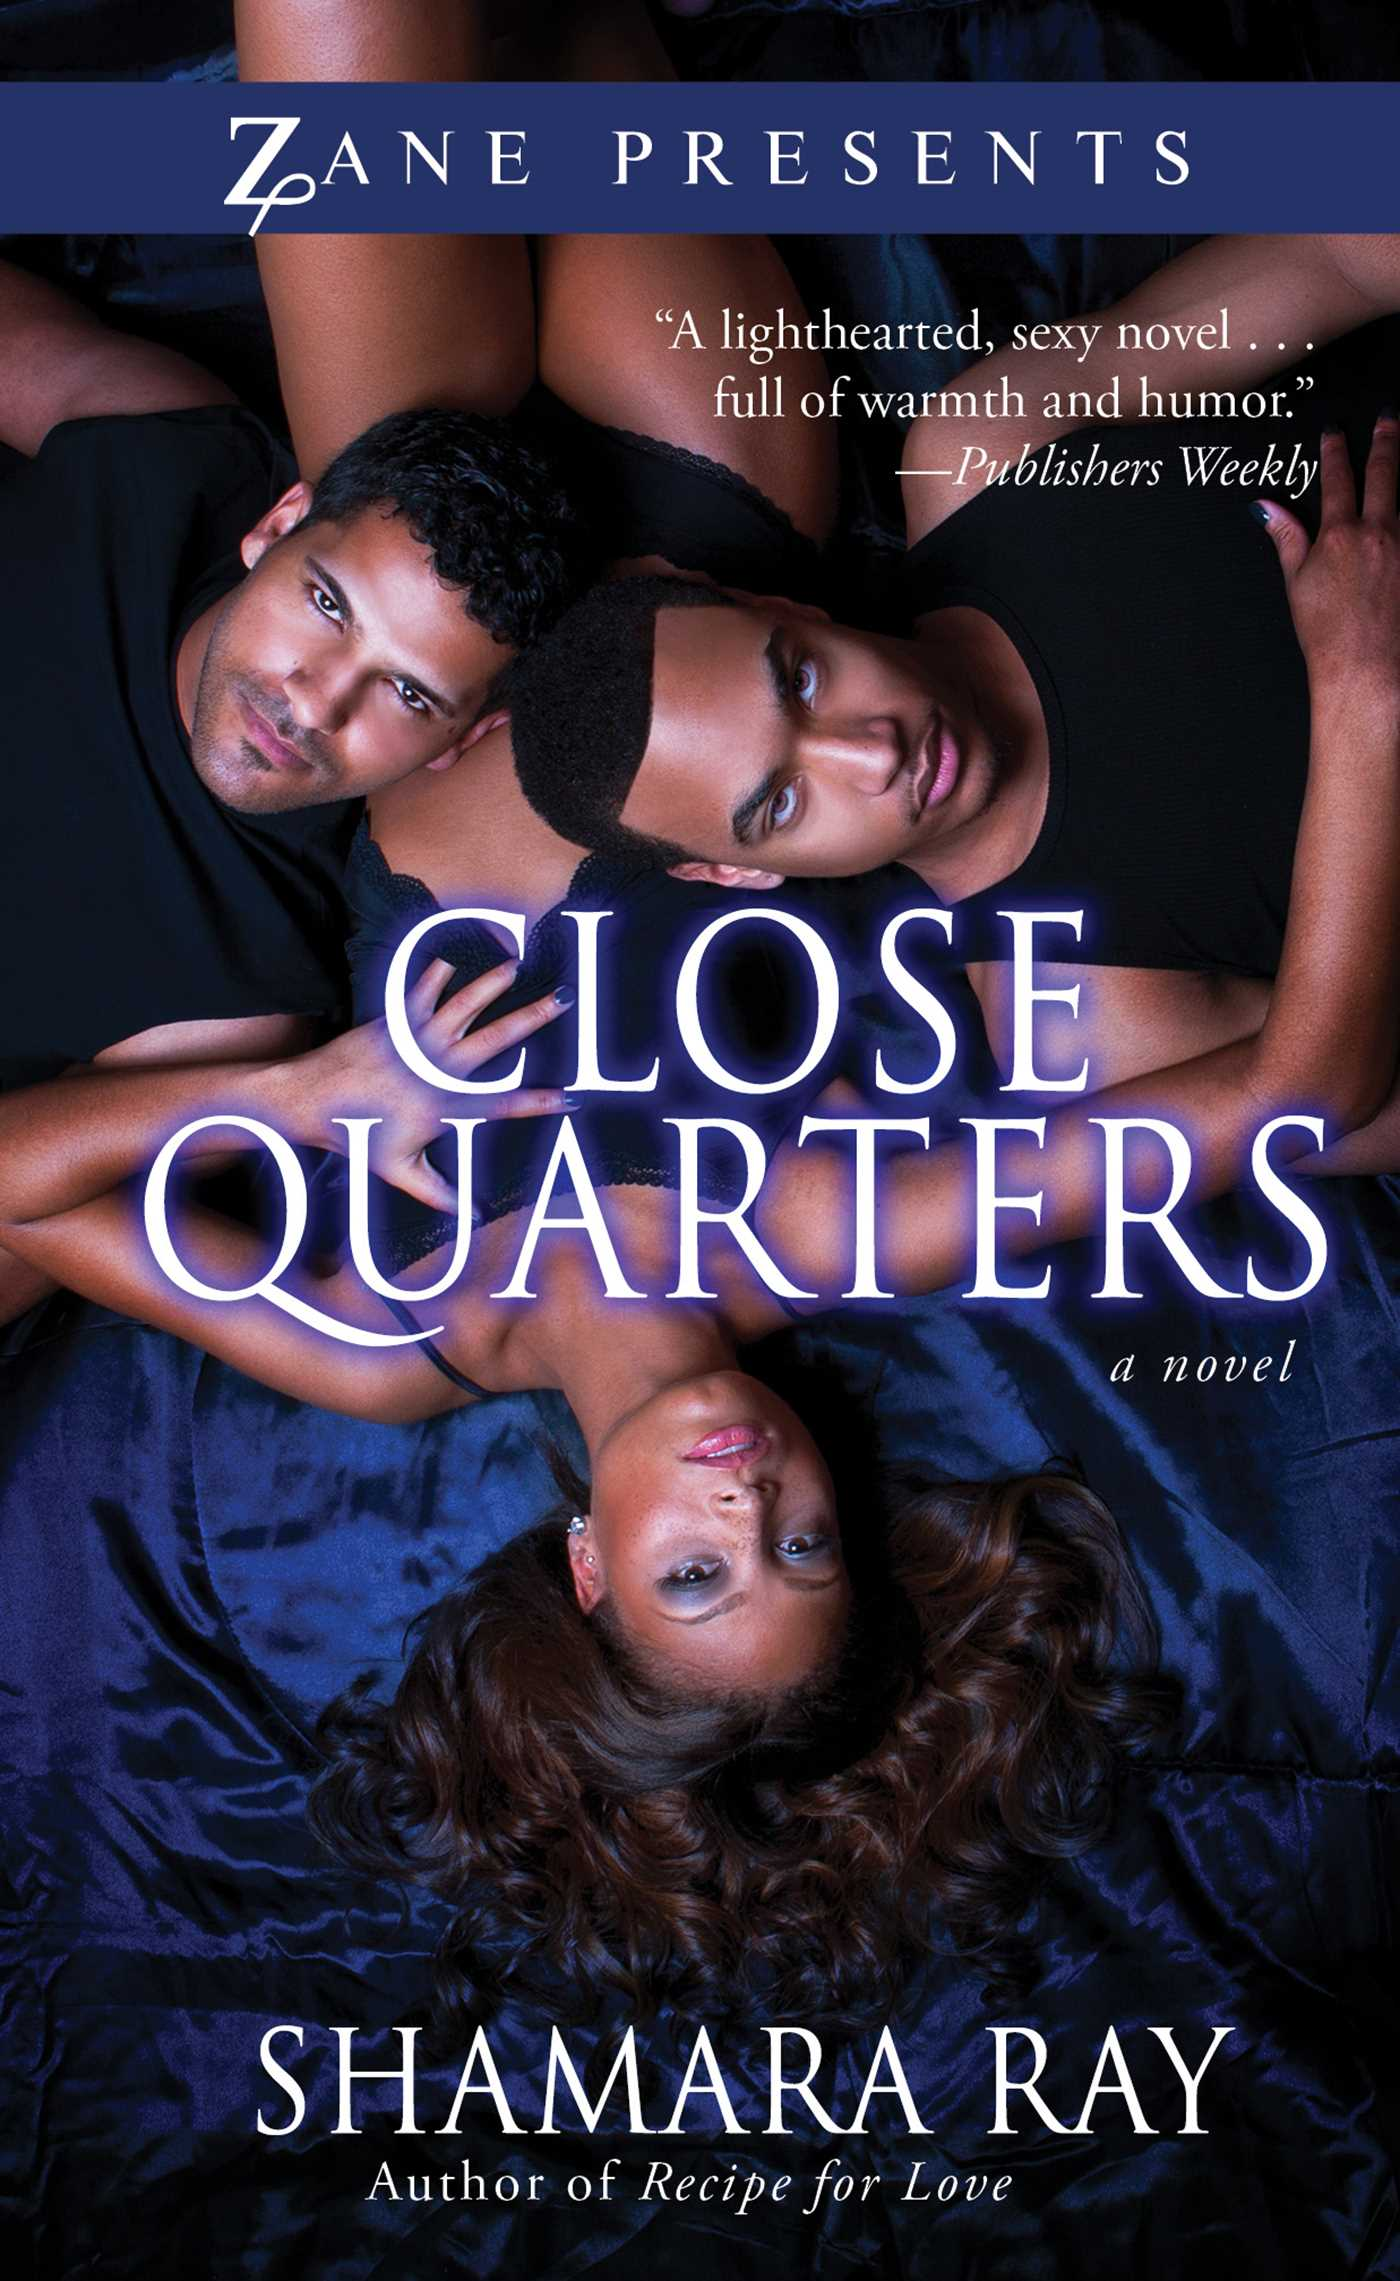 Close-quarters-9781593094447_hr